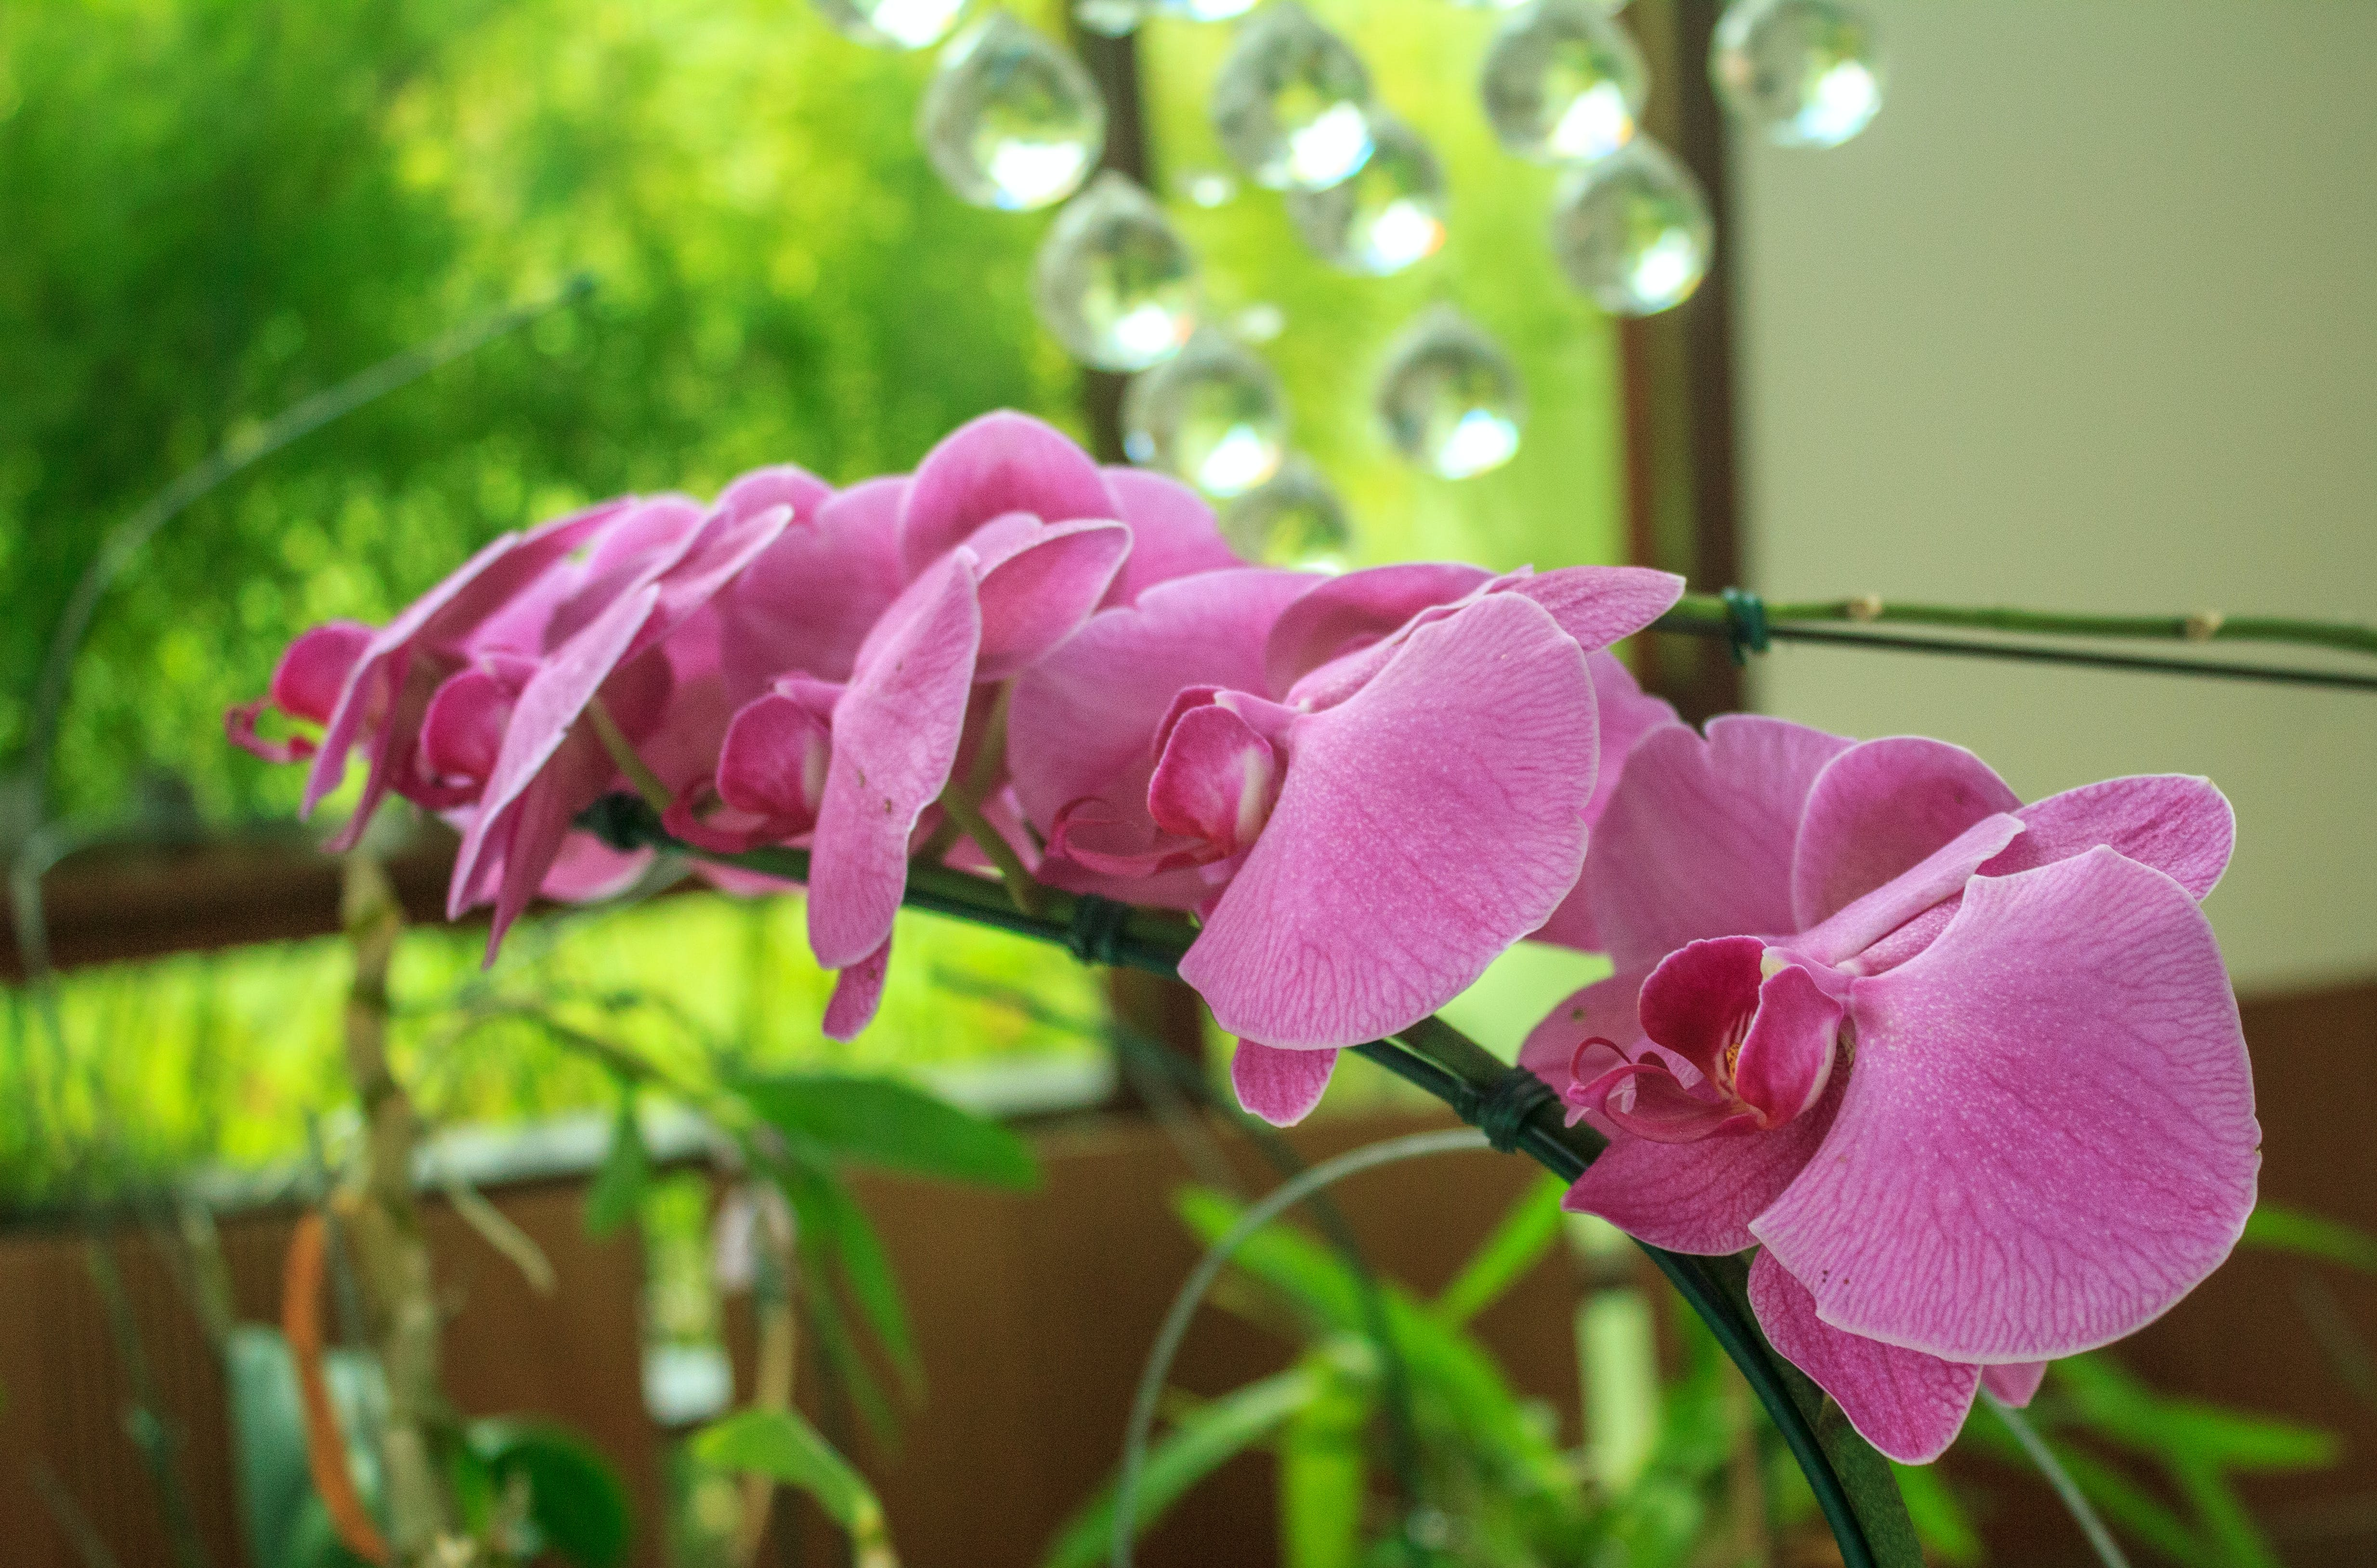 Free stock photo of orchid, beautiful flowers, lilac orchid